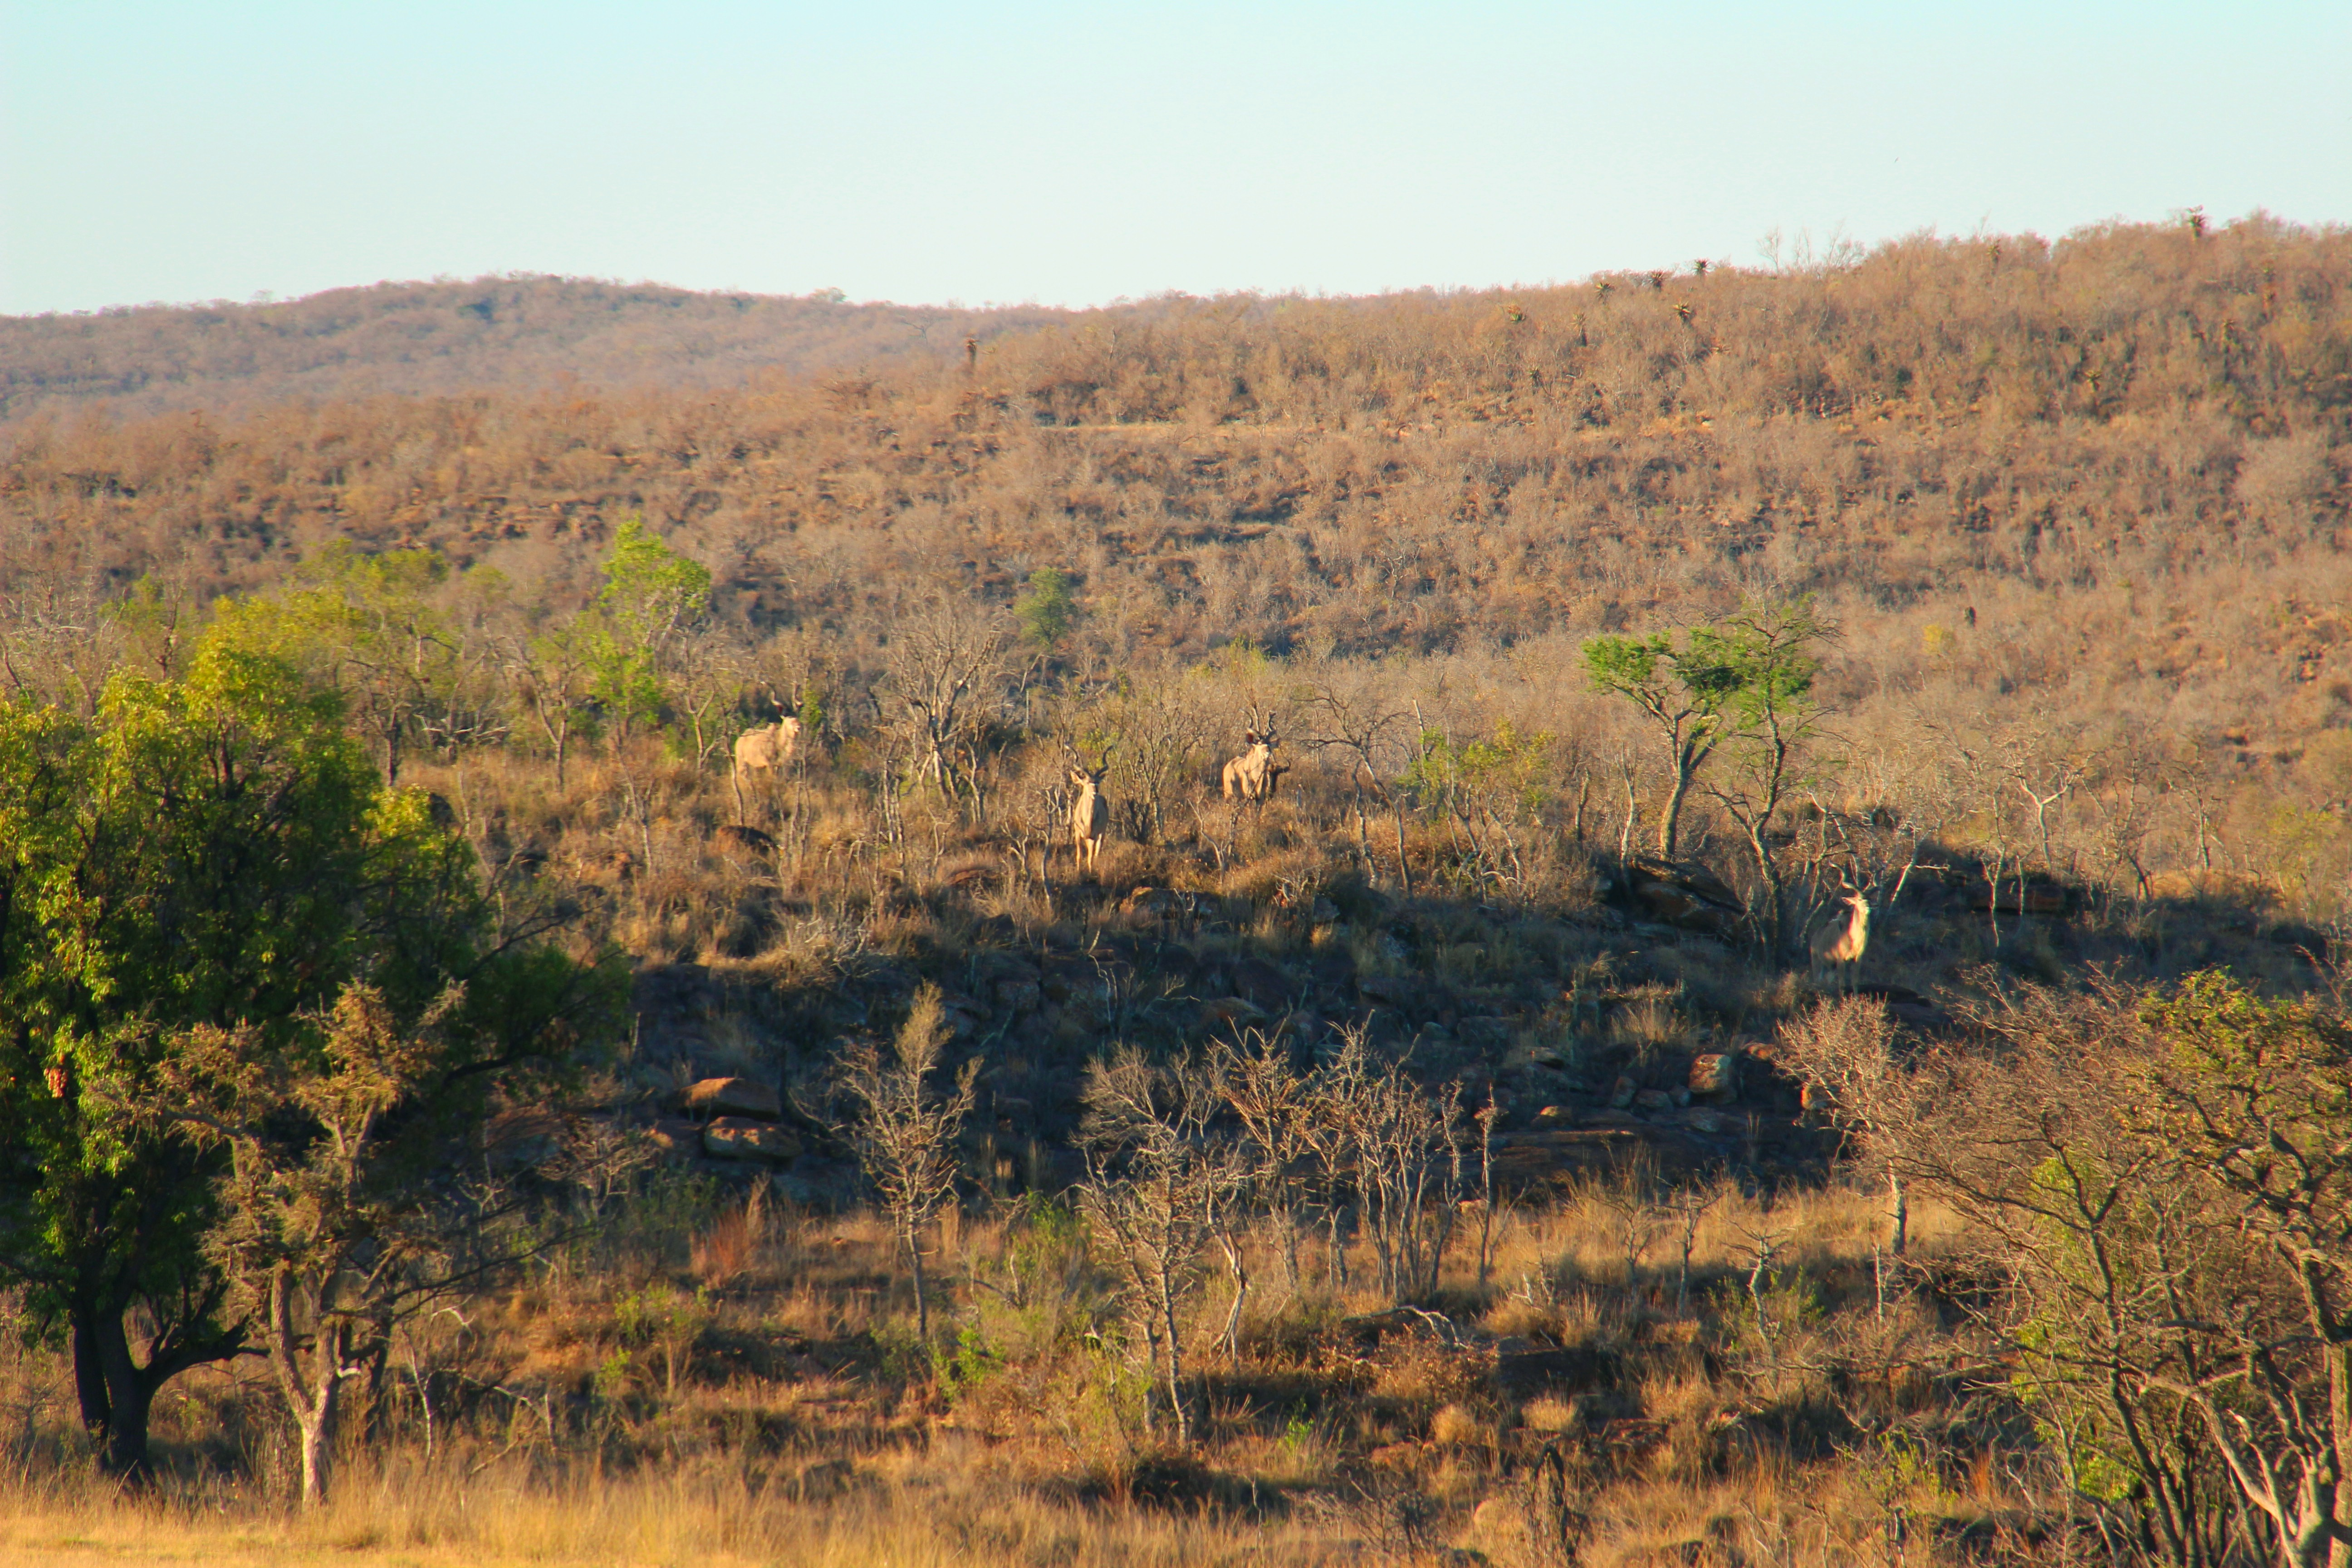 Trophy kudu bulls grazing on a hill in the distance.